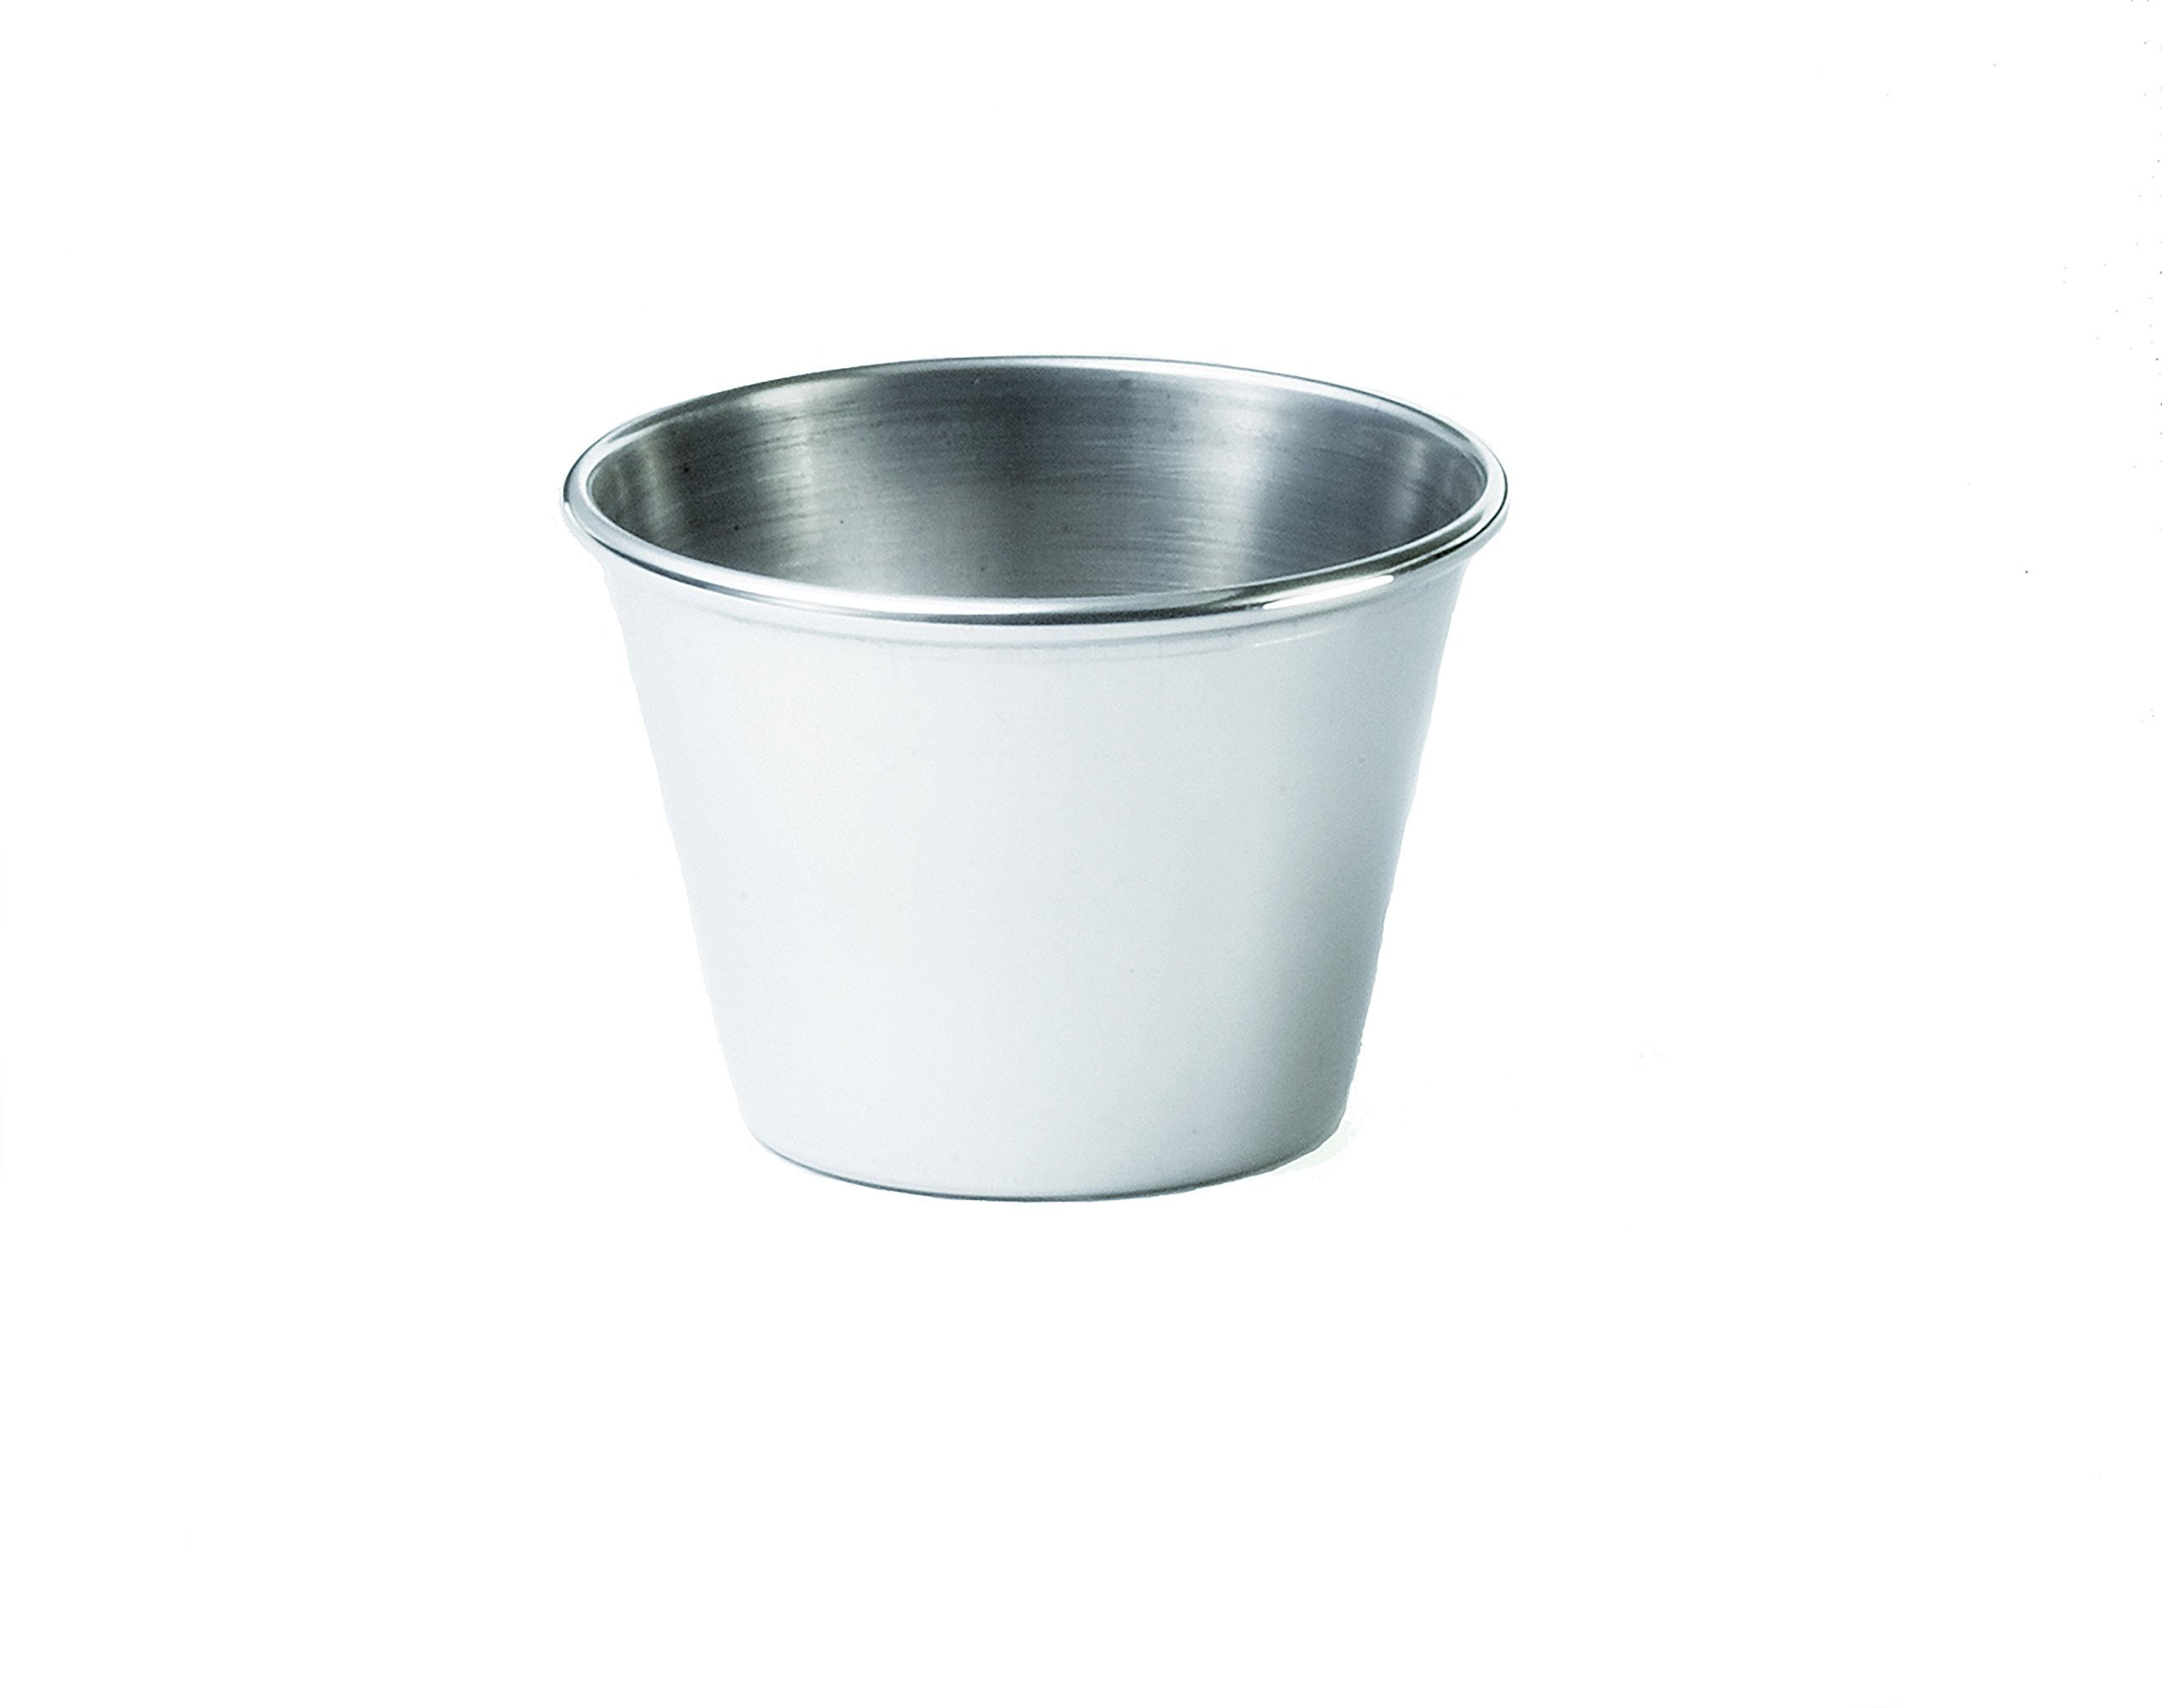 TableCraft Products 5067 2.5 oz Sauce Cup, Stainless Steel (Pack of 12)